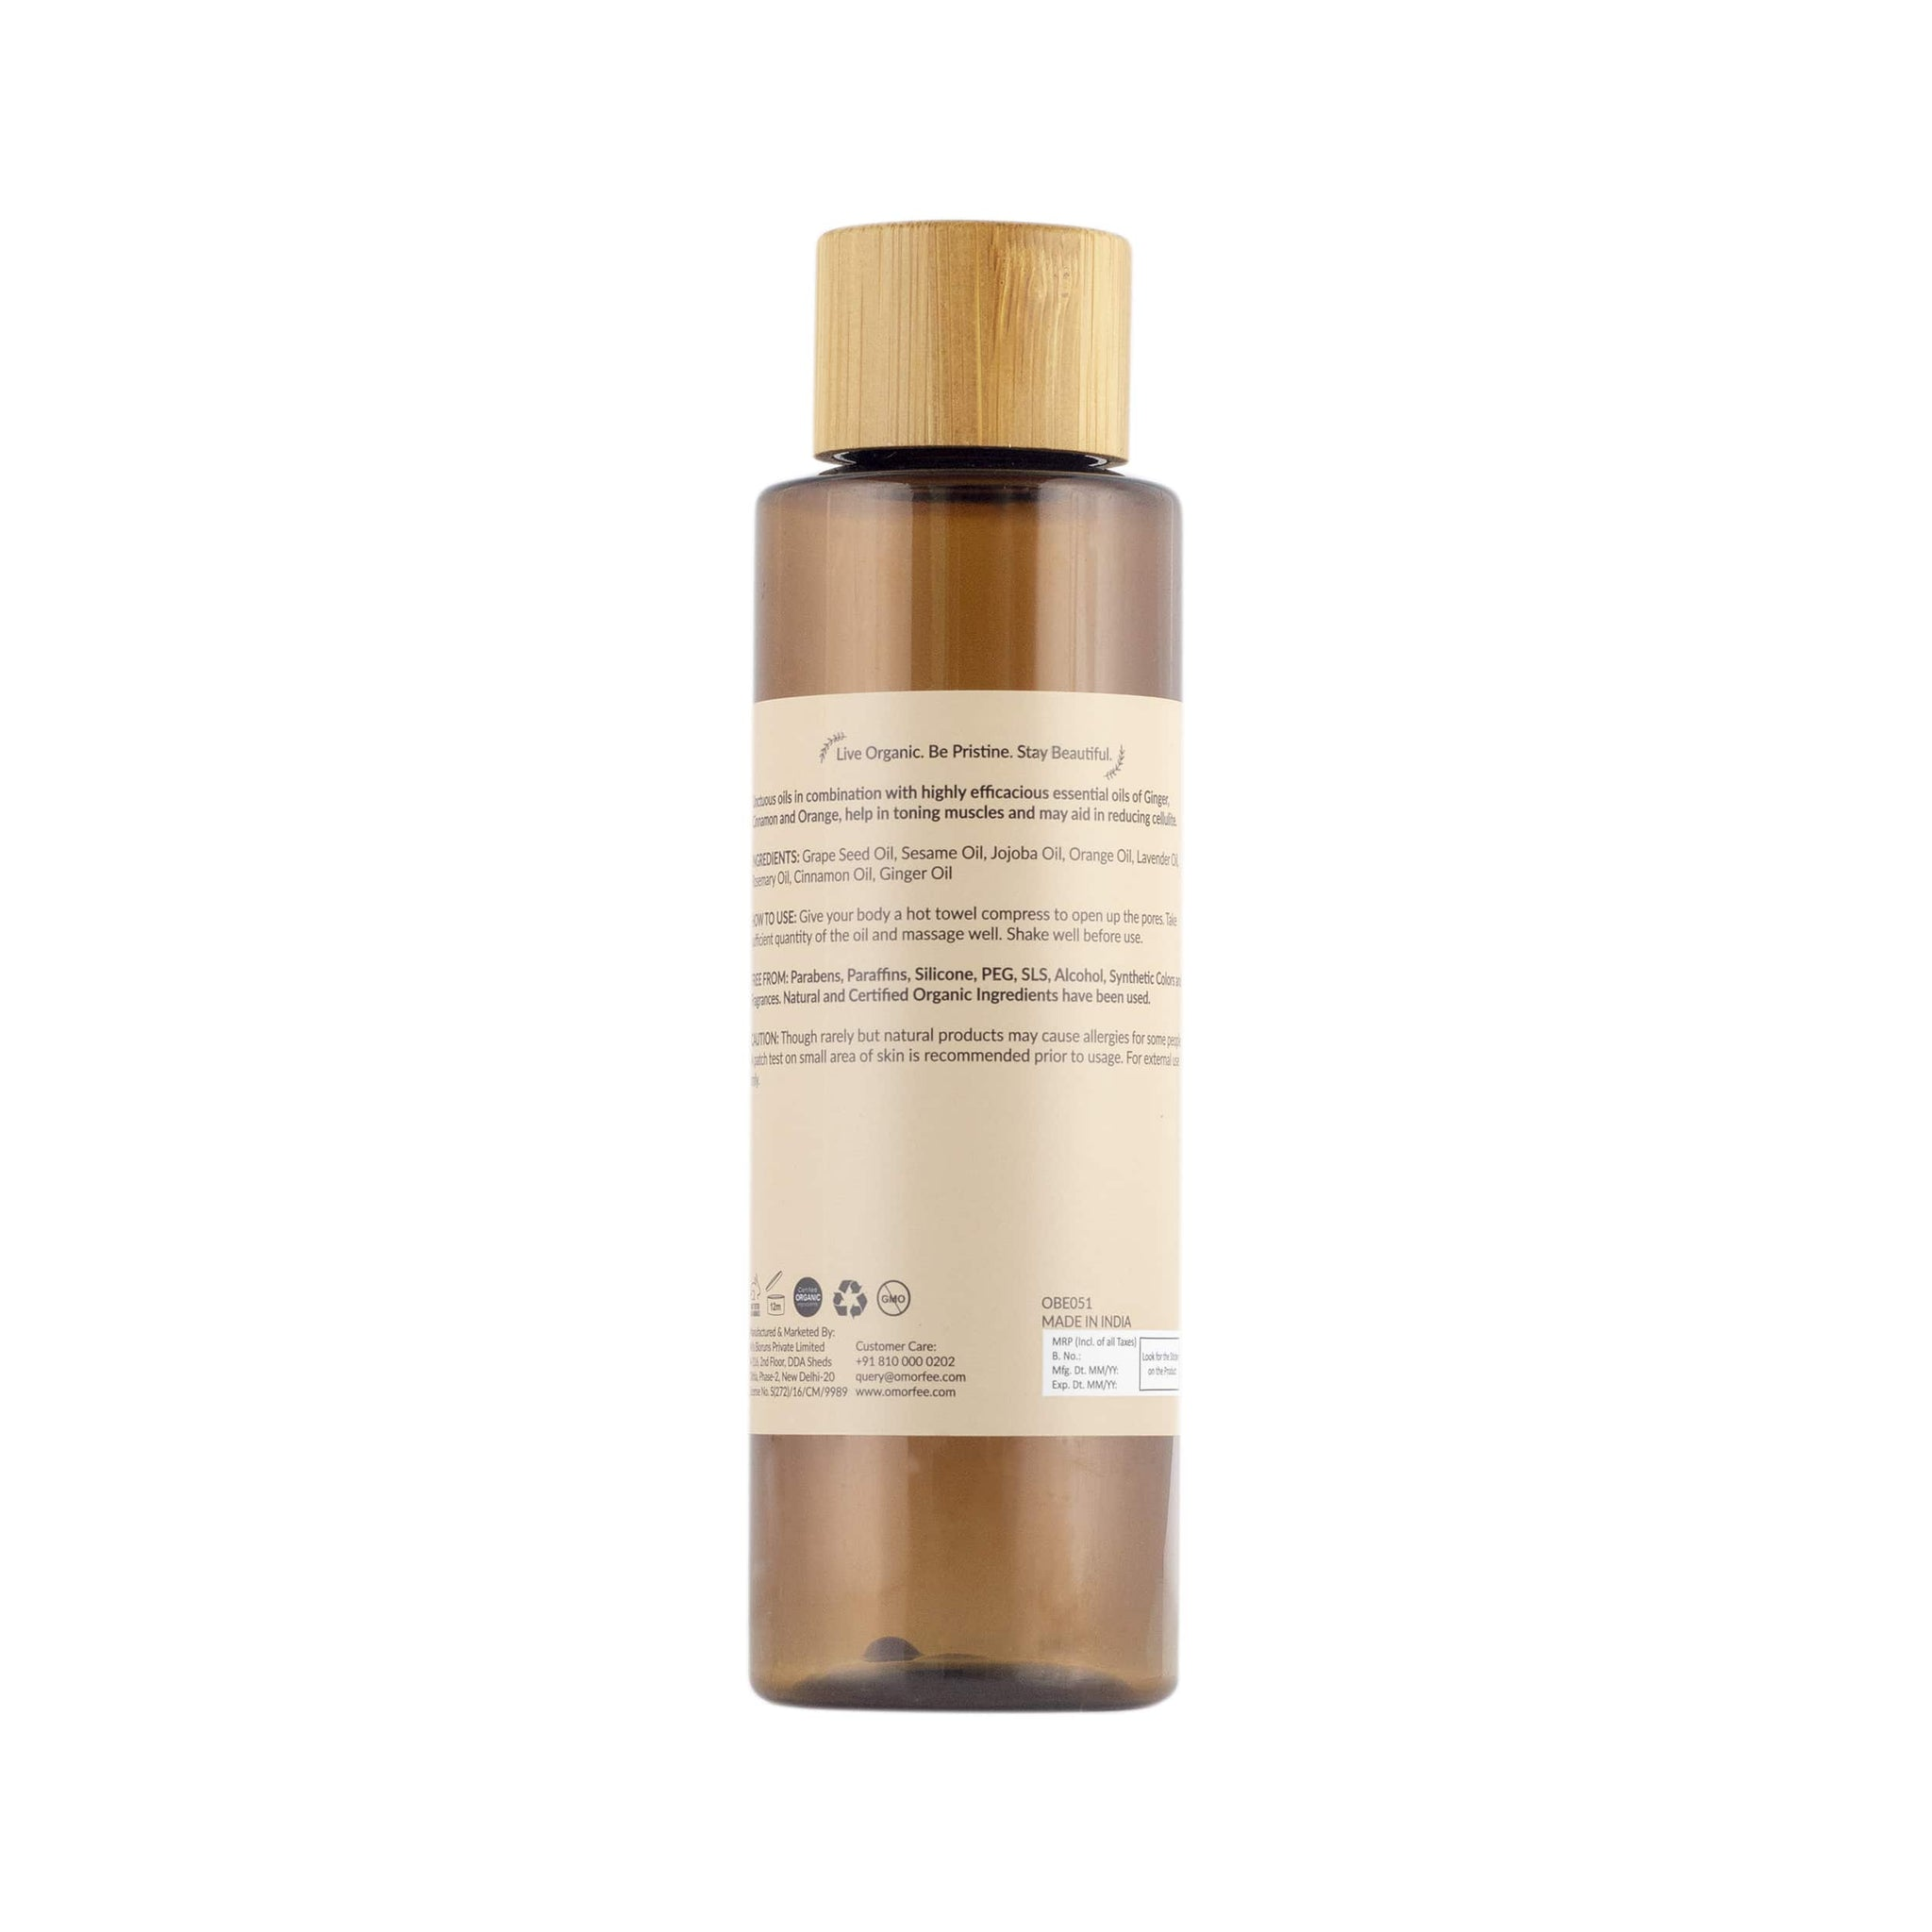 Svelte Muscle Toning Body Massage Oil